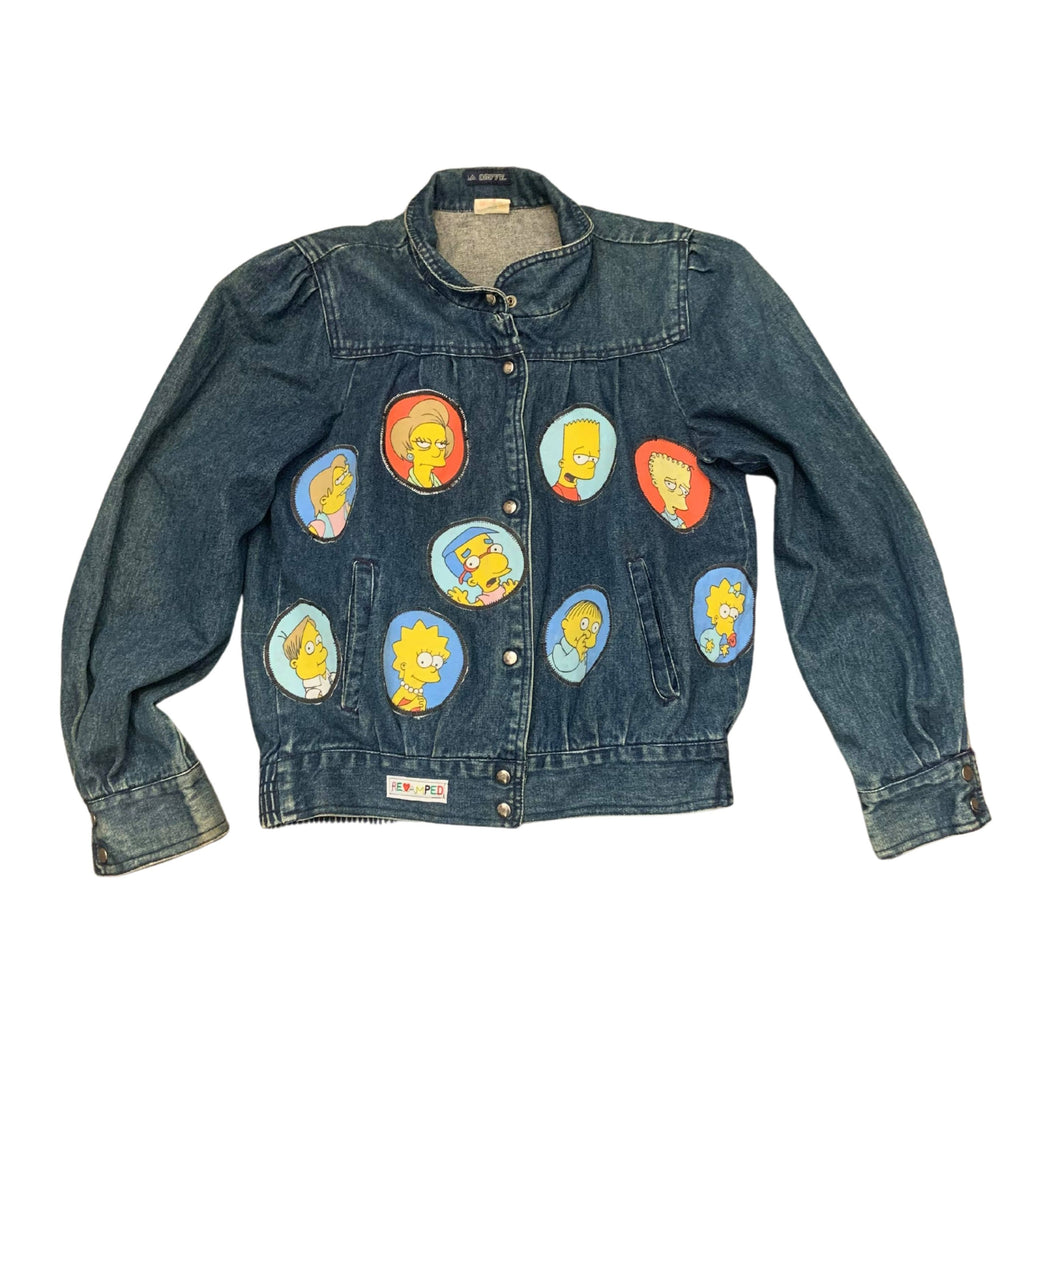 The Simpsons Jean jacket